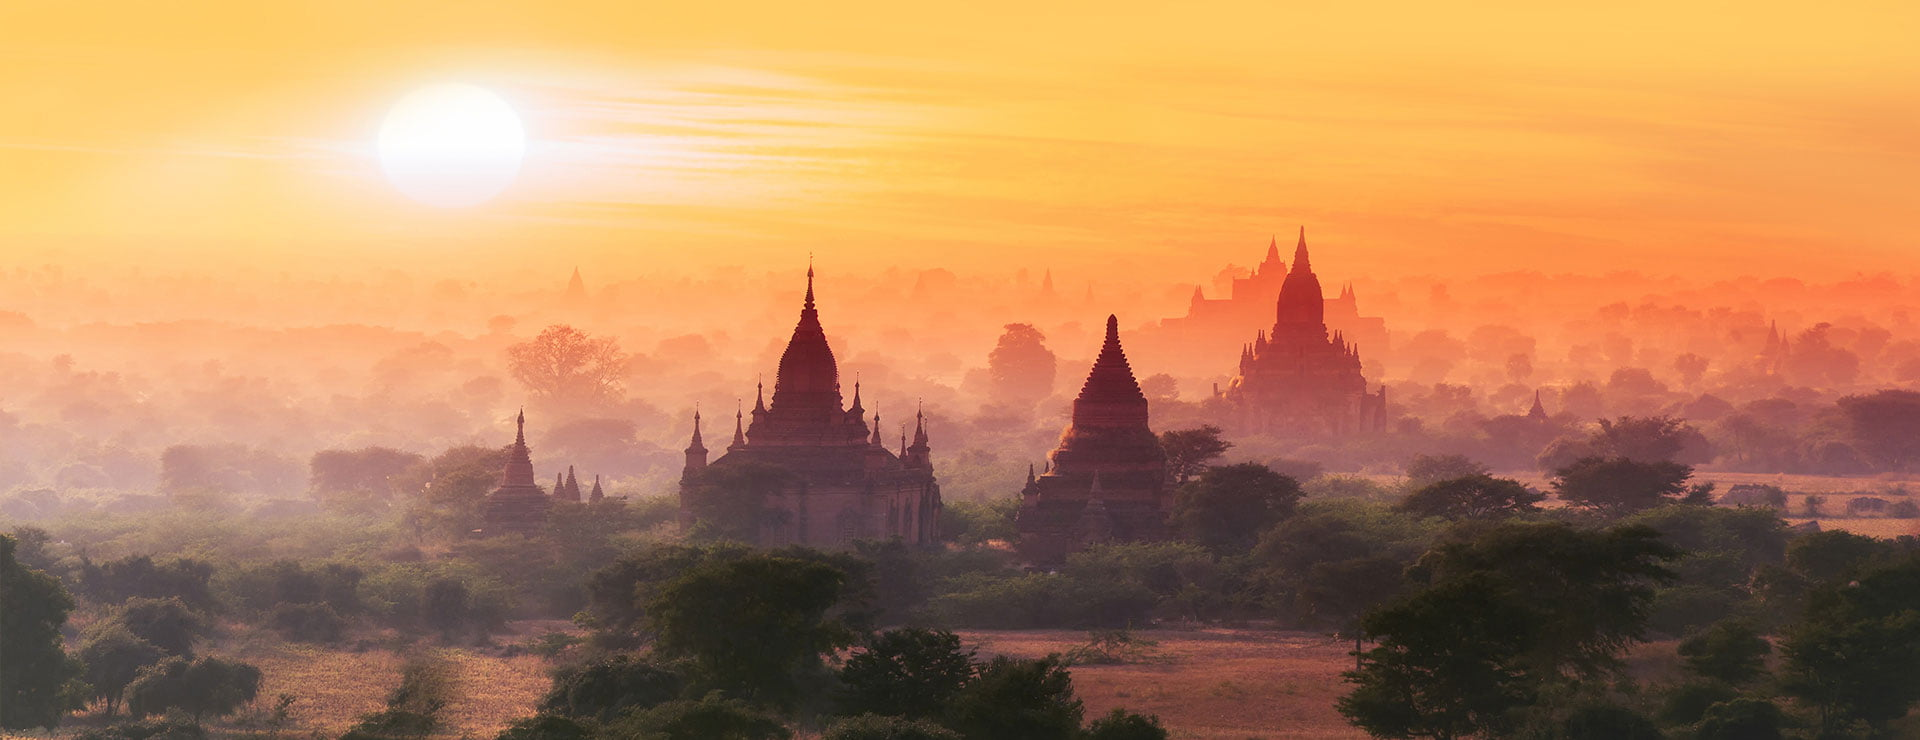 [Infographic] A guide for Bagan (Myanmar) first-timers